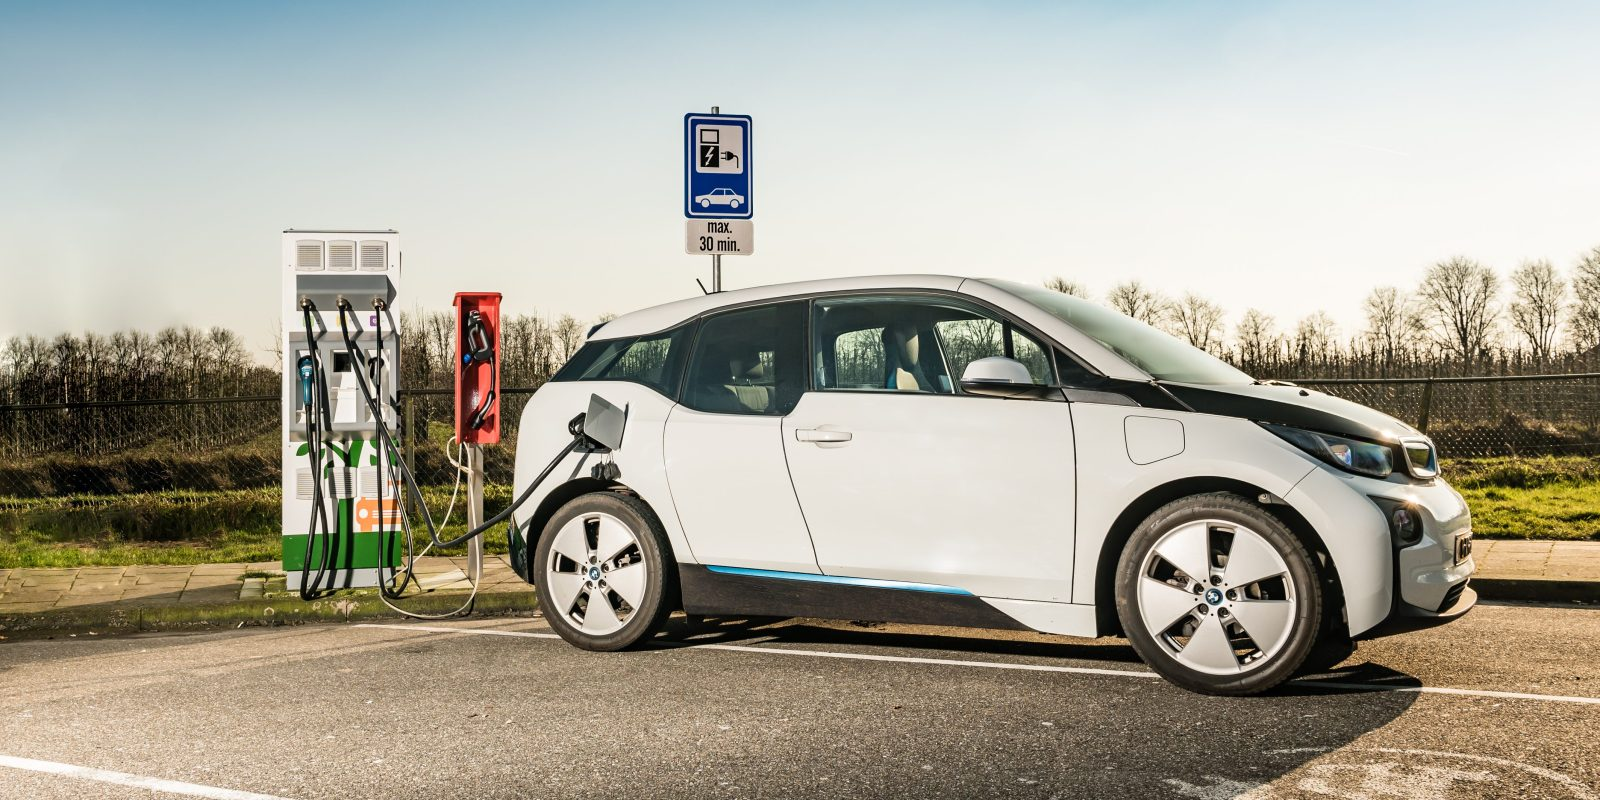 Bmw And Porsche Join Forces To Enable 15 Min Electric Car Charging At 450 Kw Charge Rate